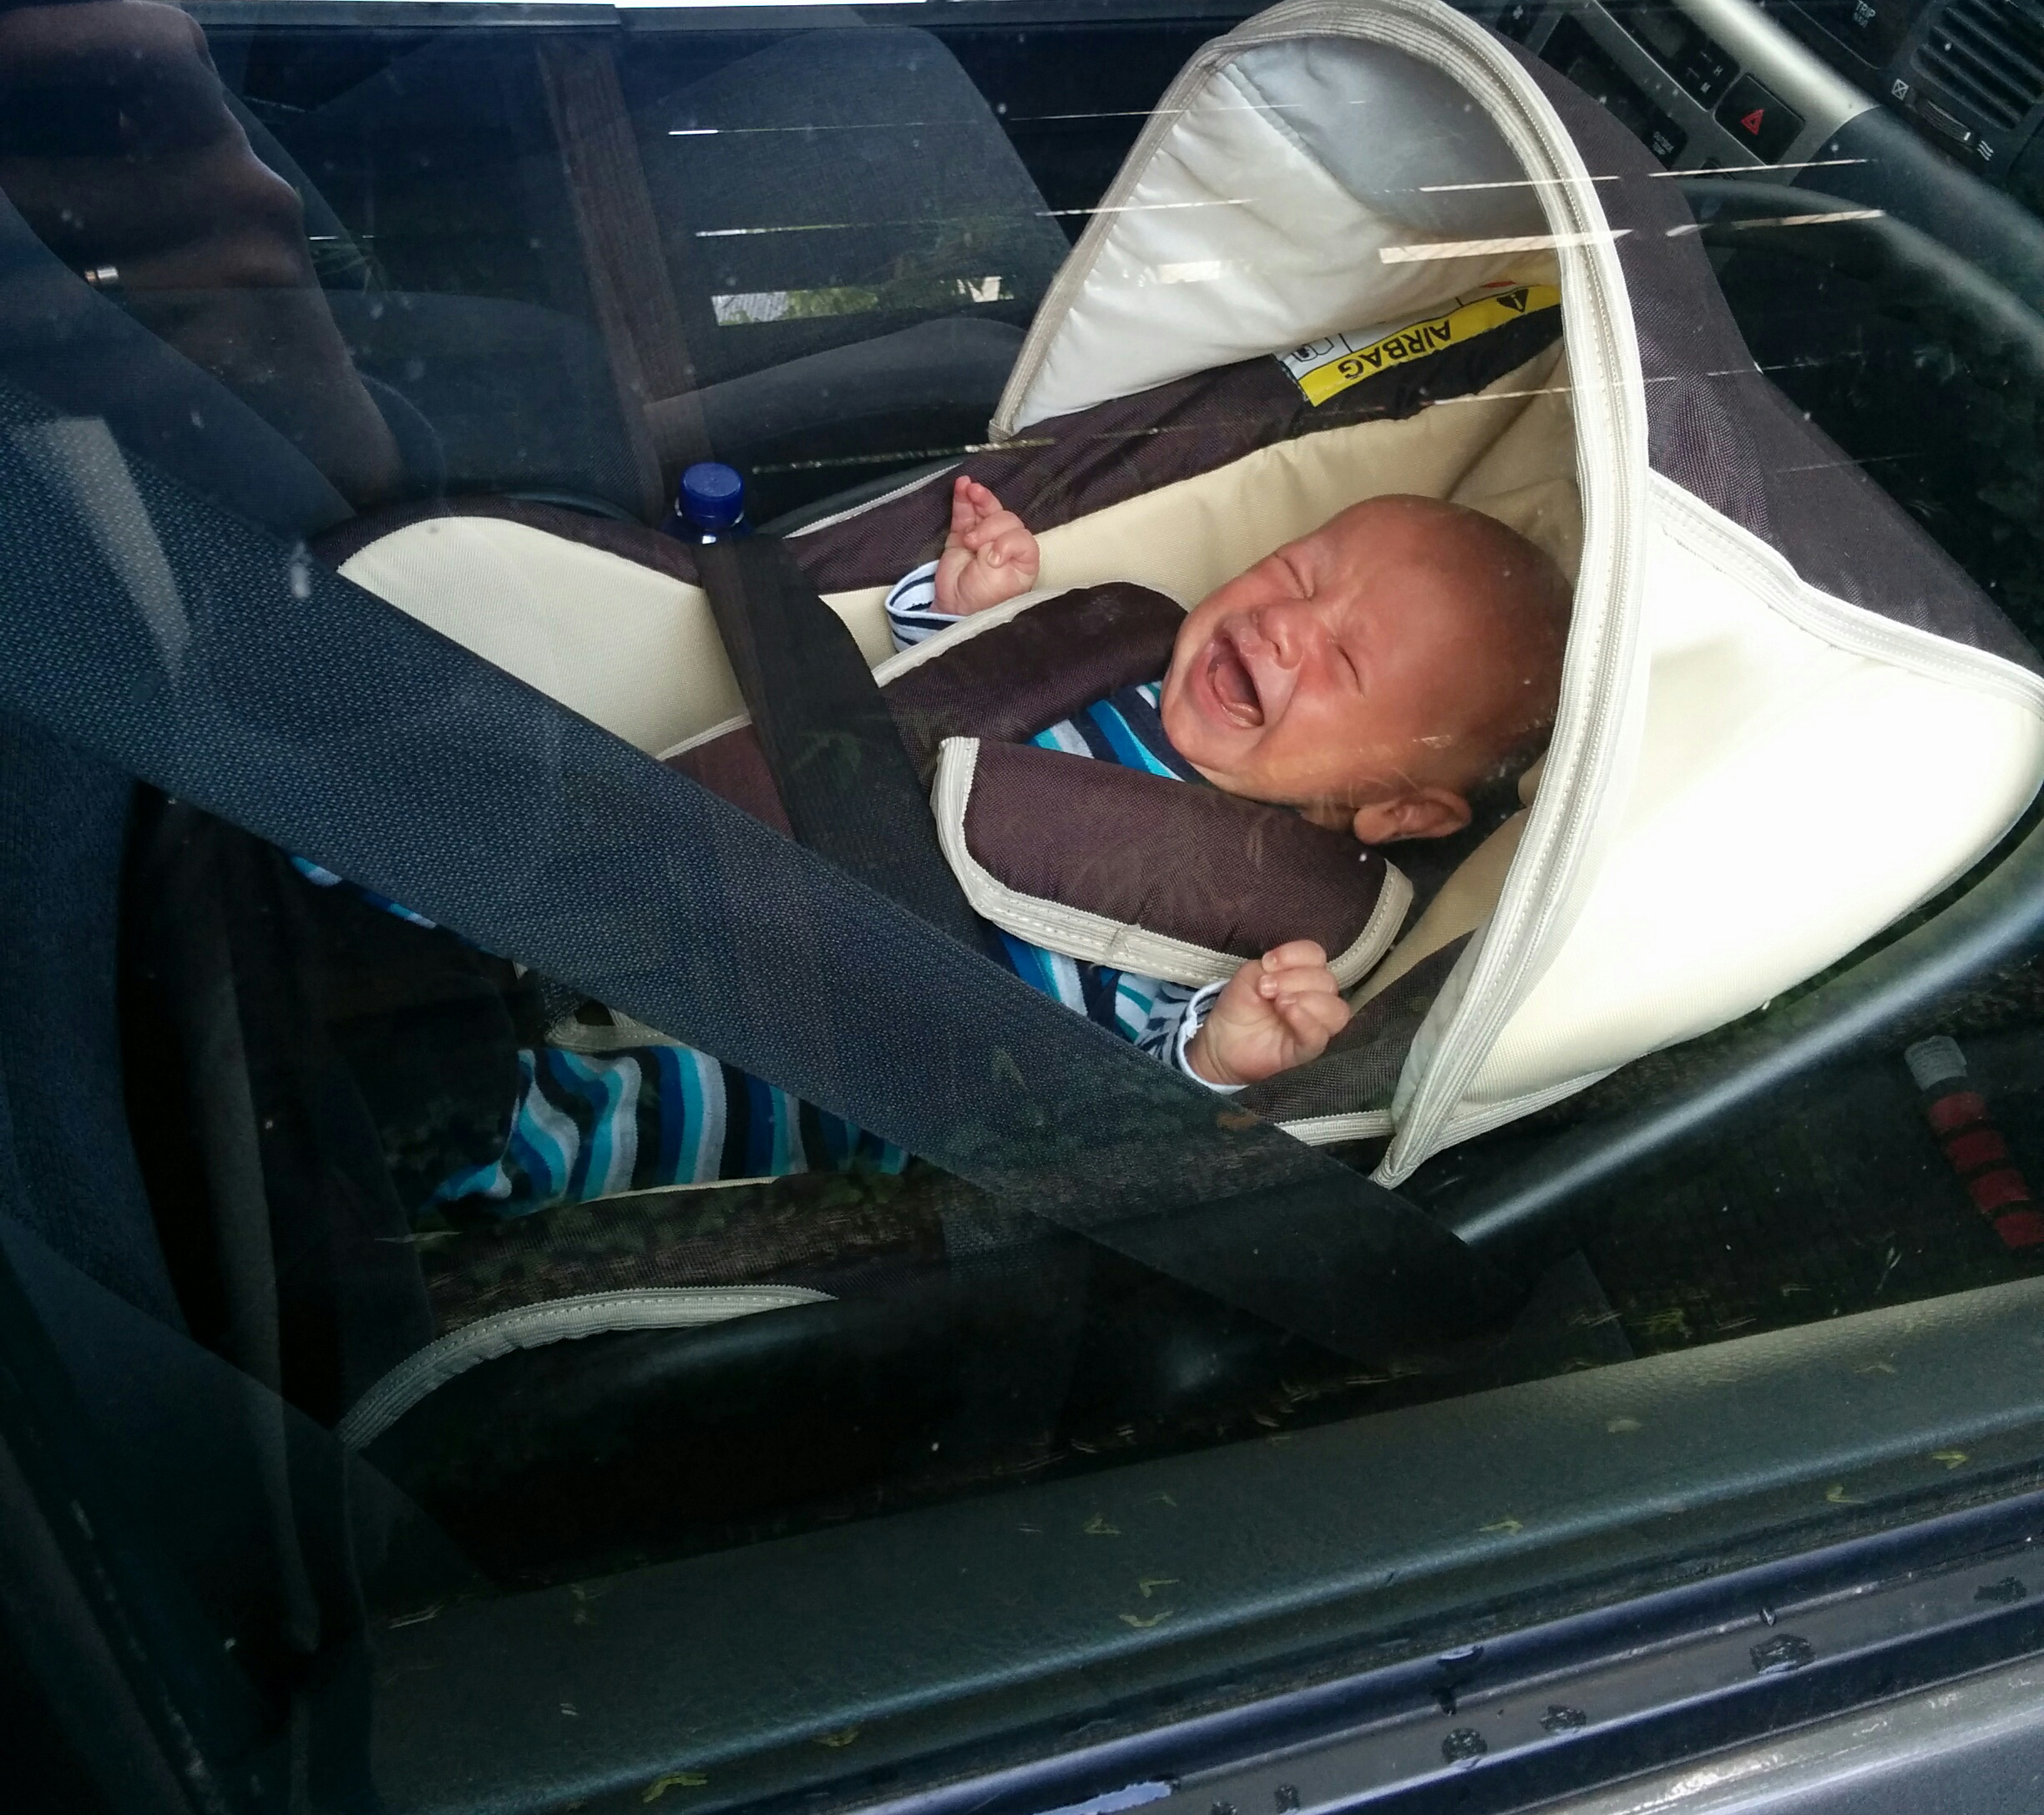 Never Leave Your Child Unattended In A Car